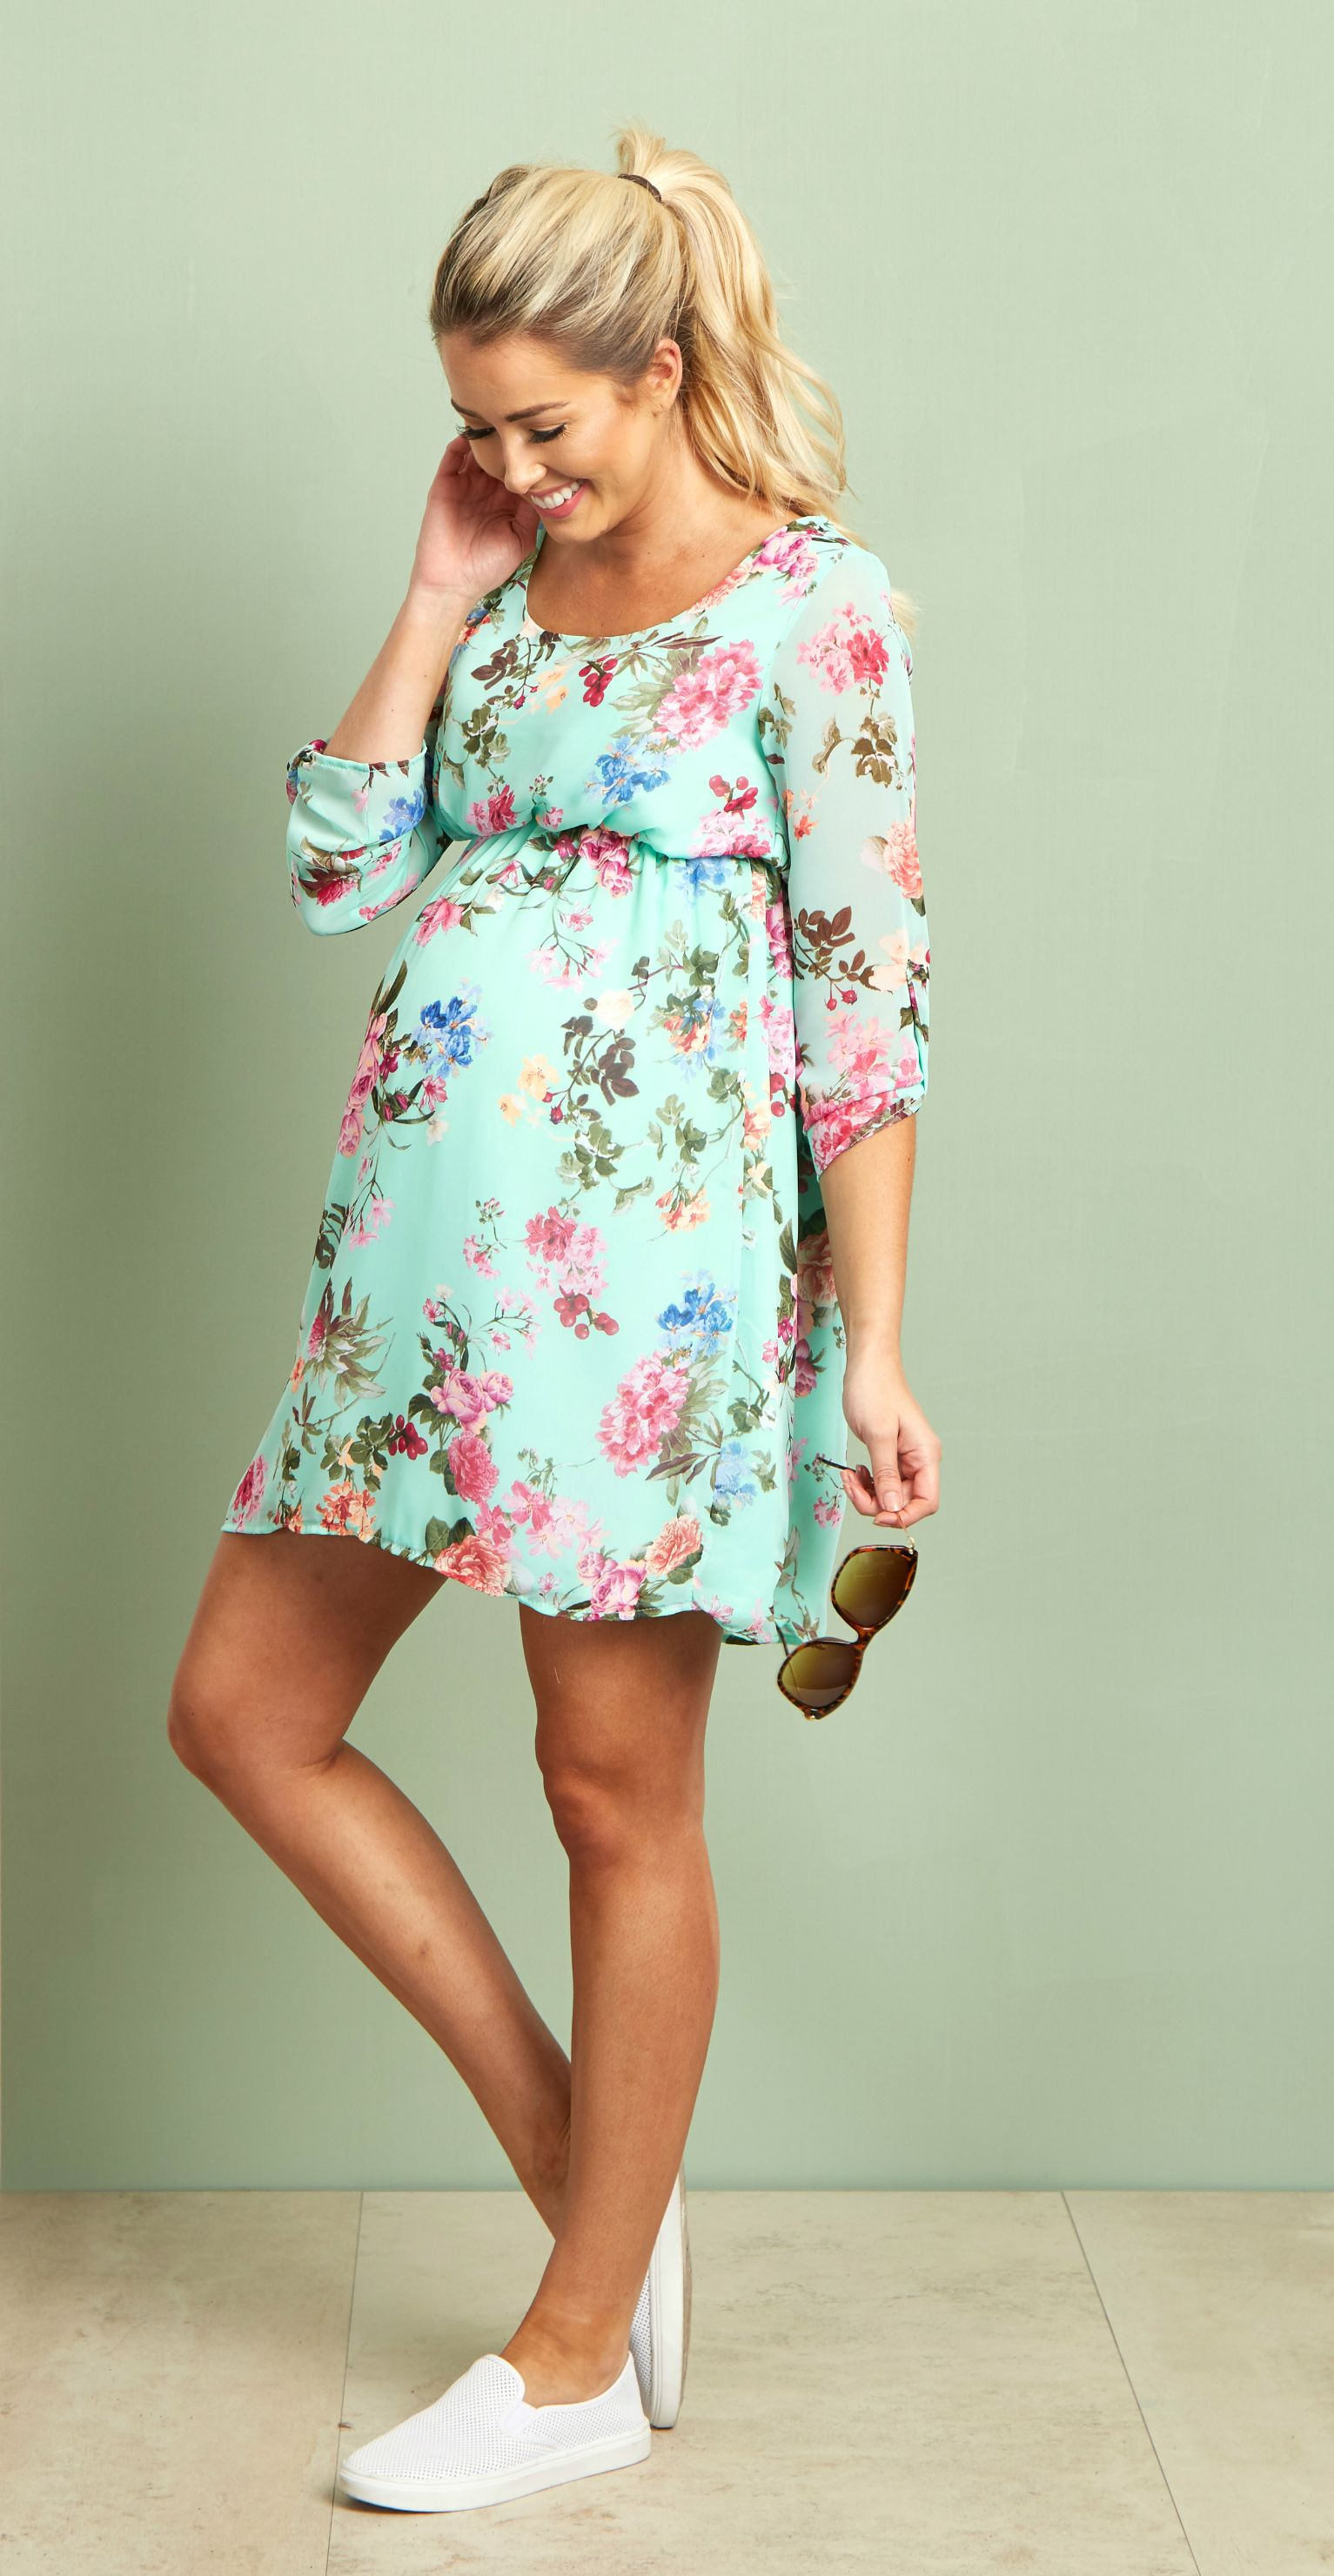 64b77f3a834 Grab the ultimate maternity dress for every occasion from baby shower to  Sunday brunch and date night. Wherever you're going, you'll look and feel  gorgeous